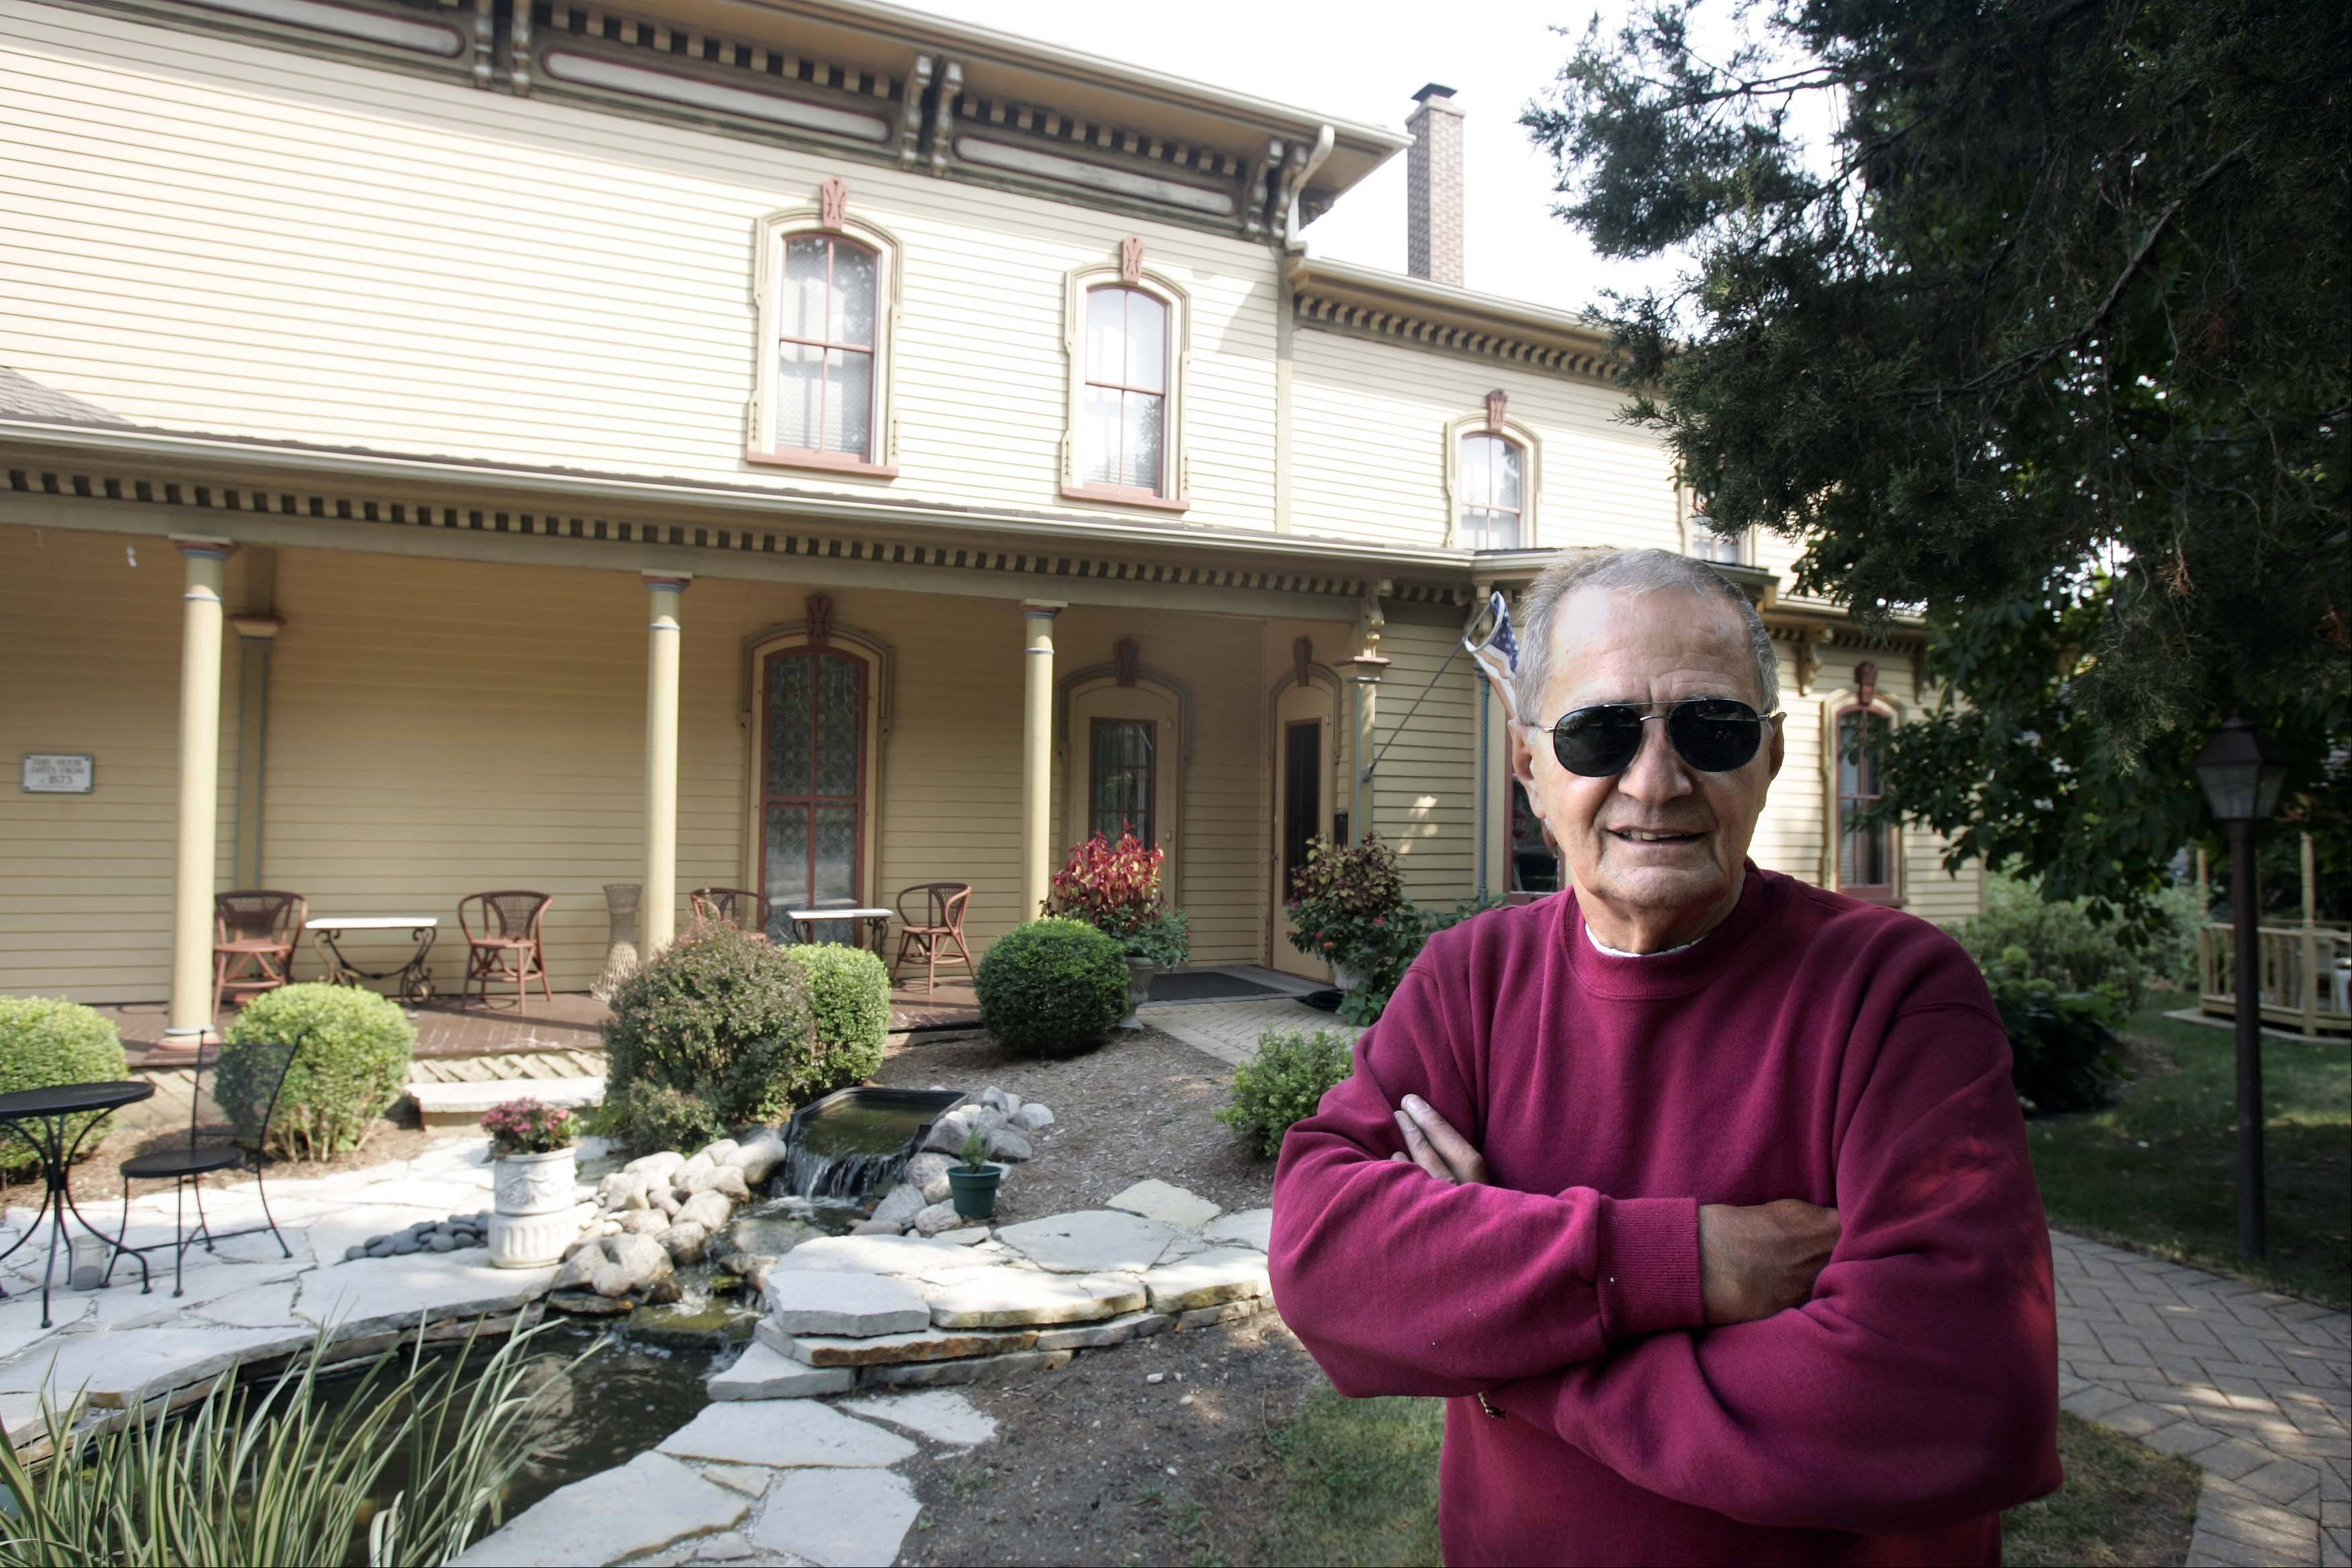 Charles Denofrio wanted to turn the first floor of his historic West Dundee house into a coffeehouse, but many neighbors are opposed to the plan.